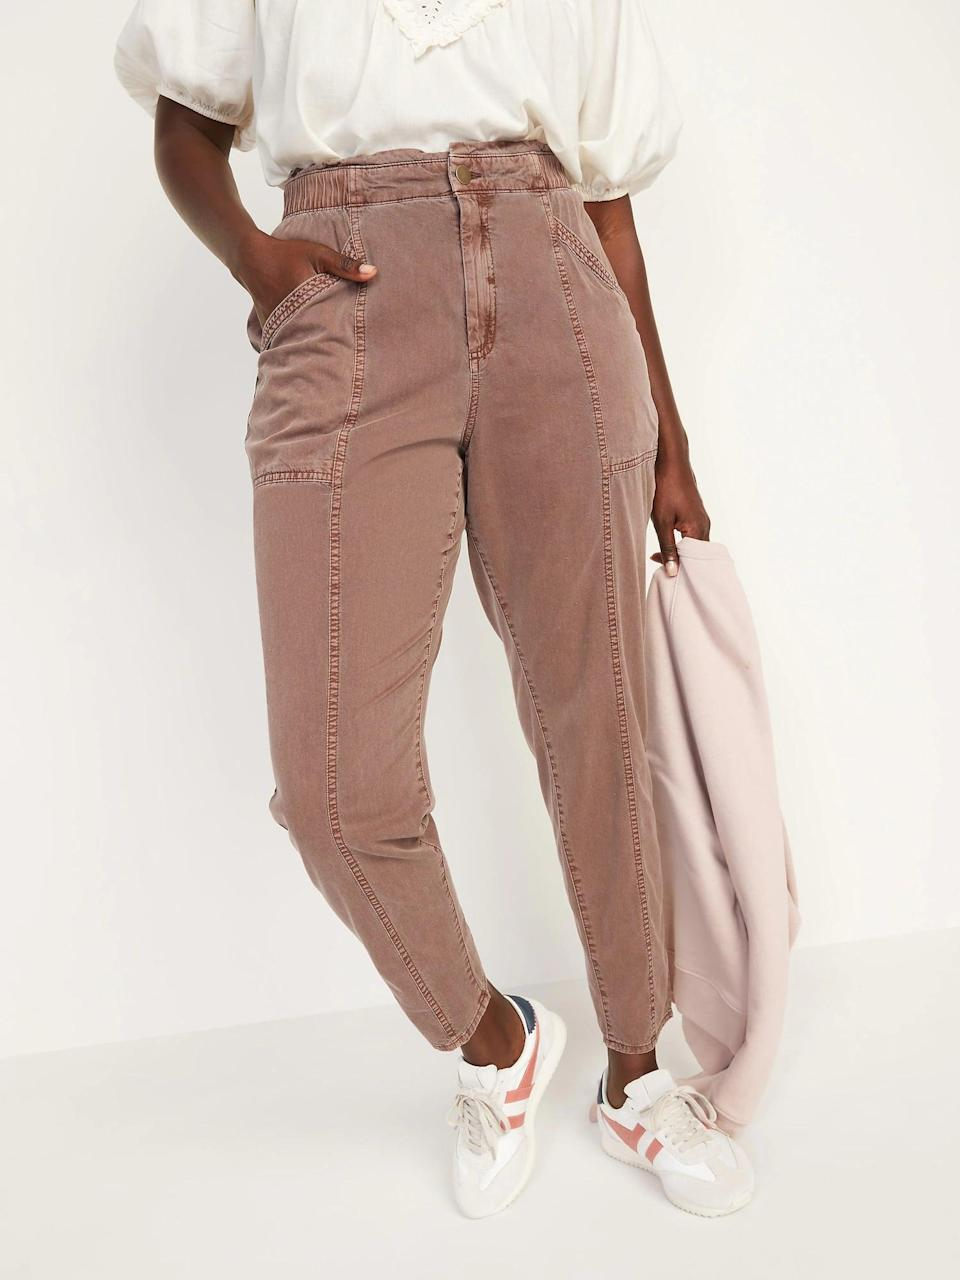 <p>The paperbag waist on these <span>Old Navy High-Waisted Garment-Dyed Utility Pants</span> ($35, originally $40) made us picture tucking in a favorite tee or slipping a bodysuit underneath instead.</p>